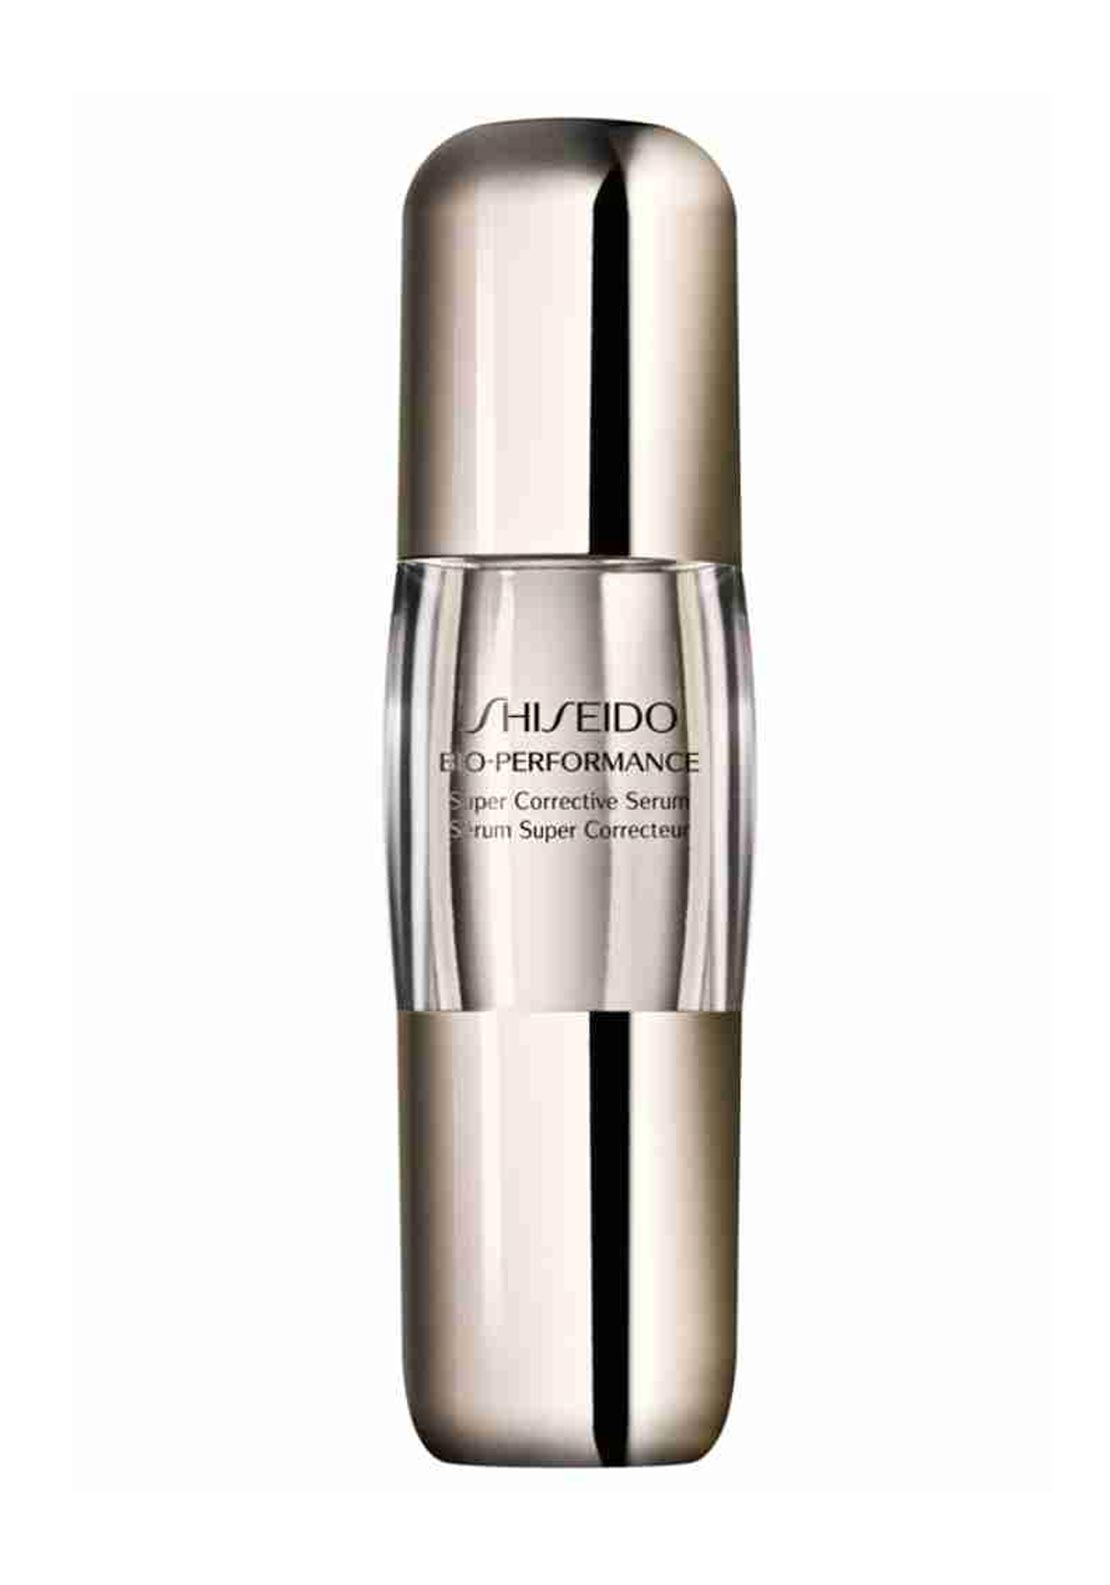 Shiseido Bio Performance Super Corrective Serum, 30ml